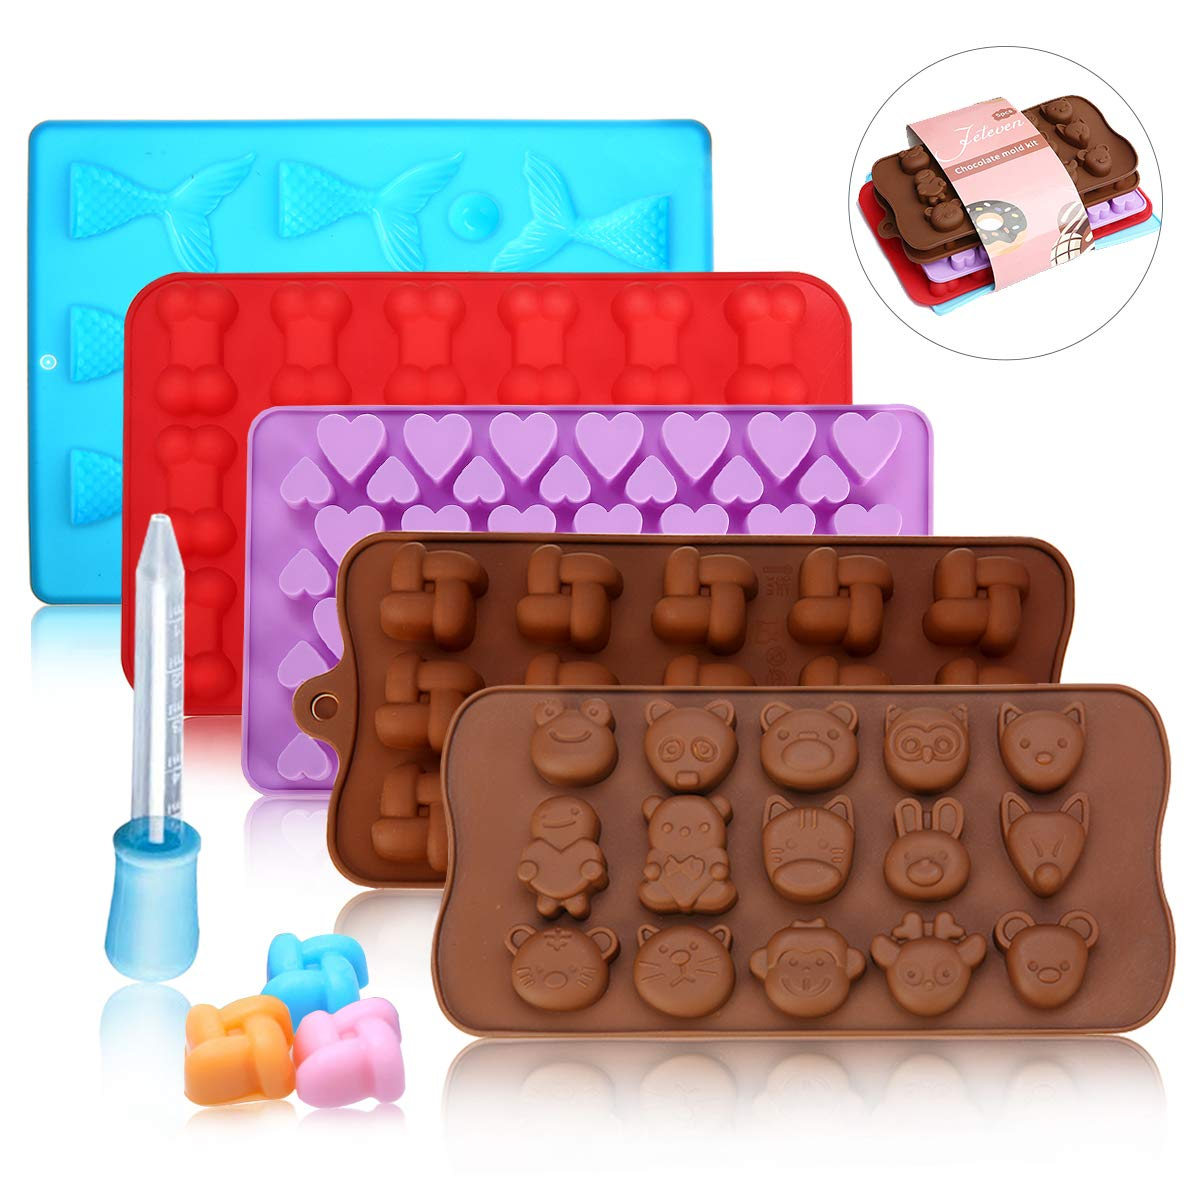 Set of 6 Bone Shape and Mermaid Heart Shape Jeteven Silicone Moulds Candy Chocolate Mould /& Ice Cube Trays,5 Packs with 1 Dropper for Gumdrop,Sweet Moulds Reusable Including Windmill Animal